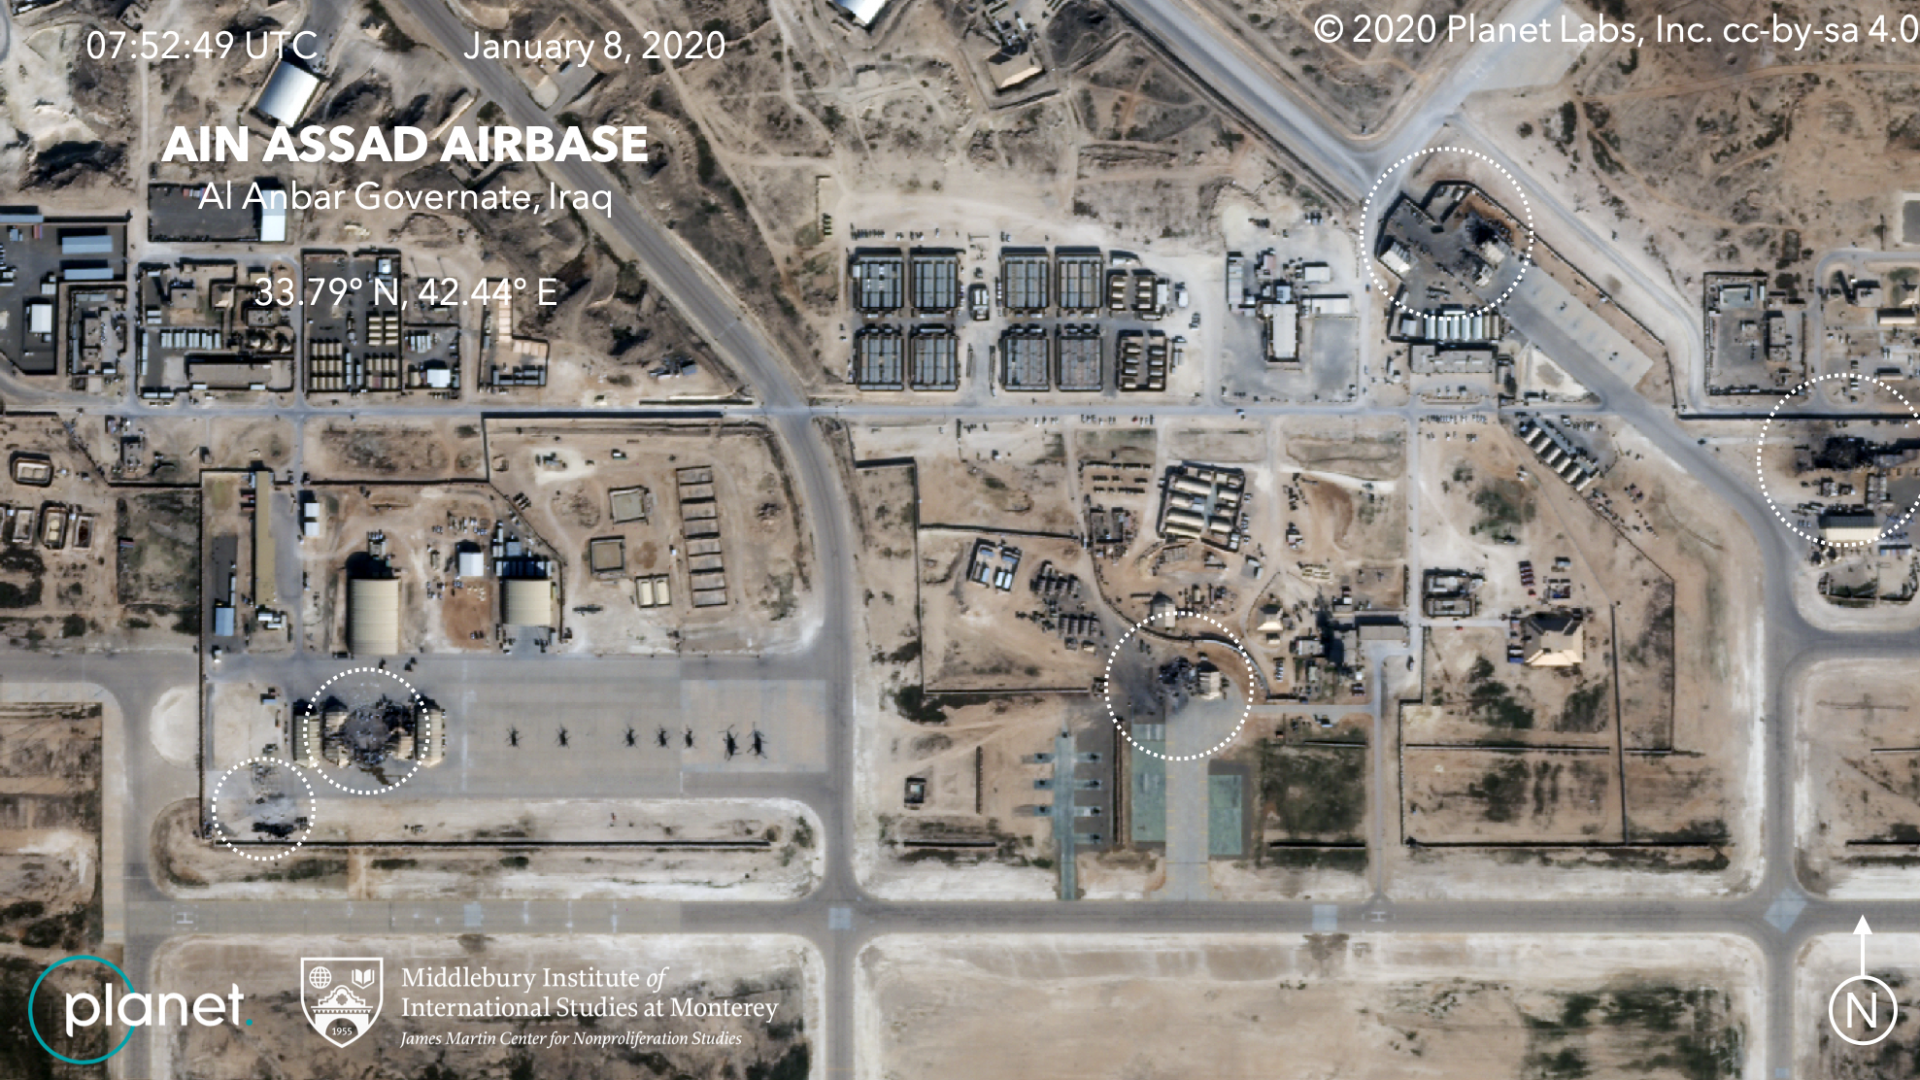 Satellite images show damage to hangars and buildings in what appears to be a series of precision missile strikes launched by Iran.